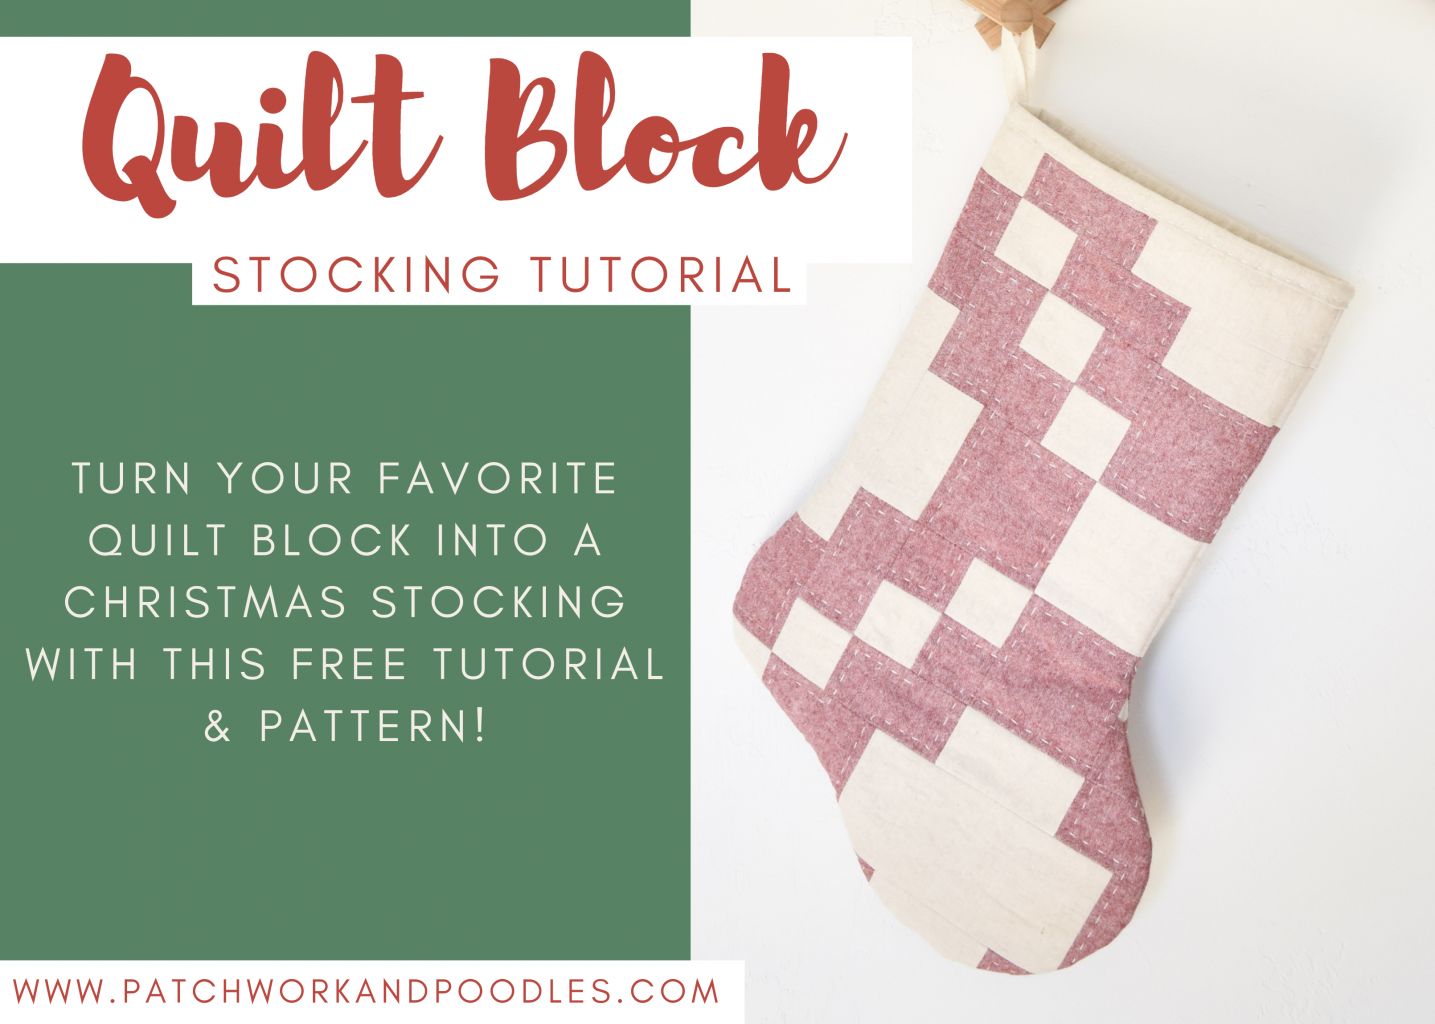 use your favorite quilt to make unique Christmas stockings with this free tutorial